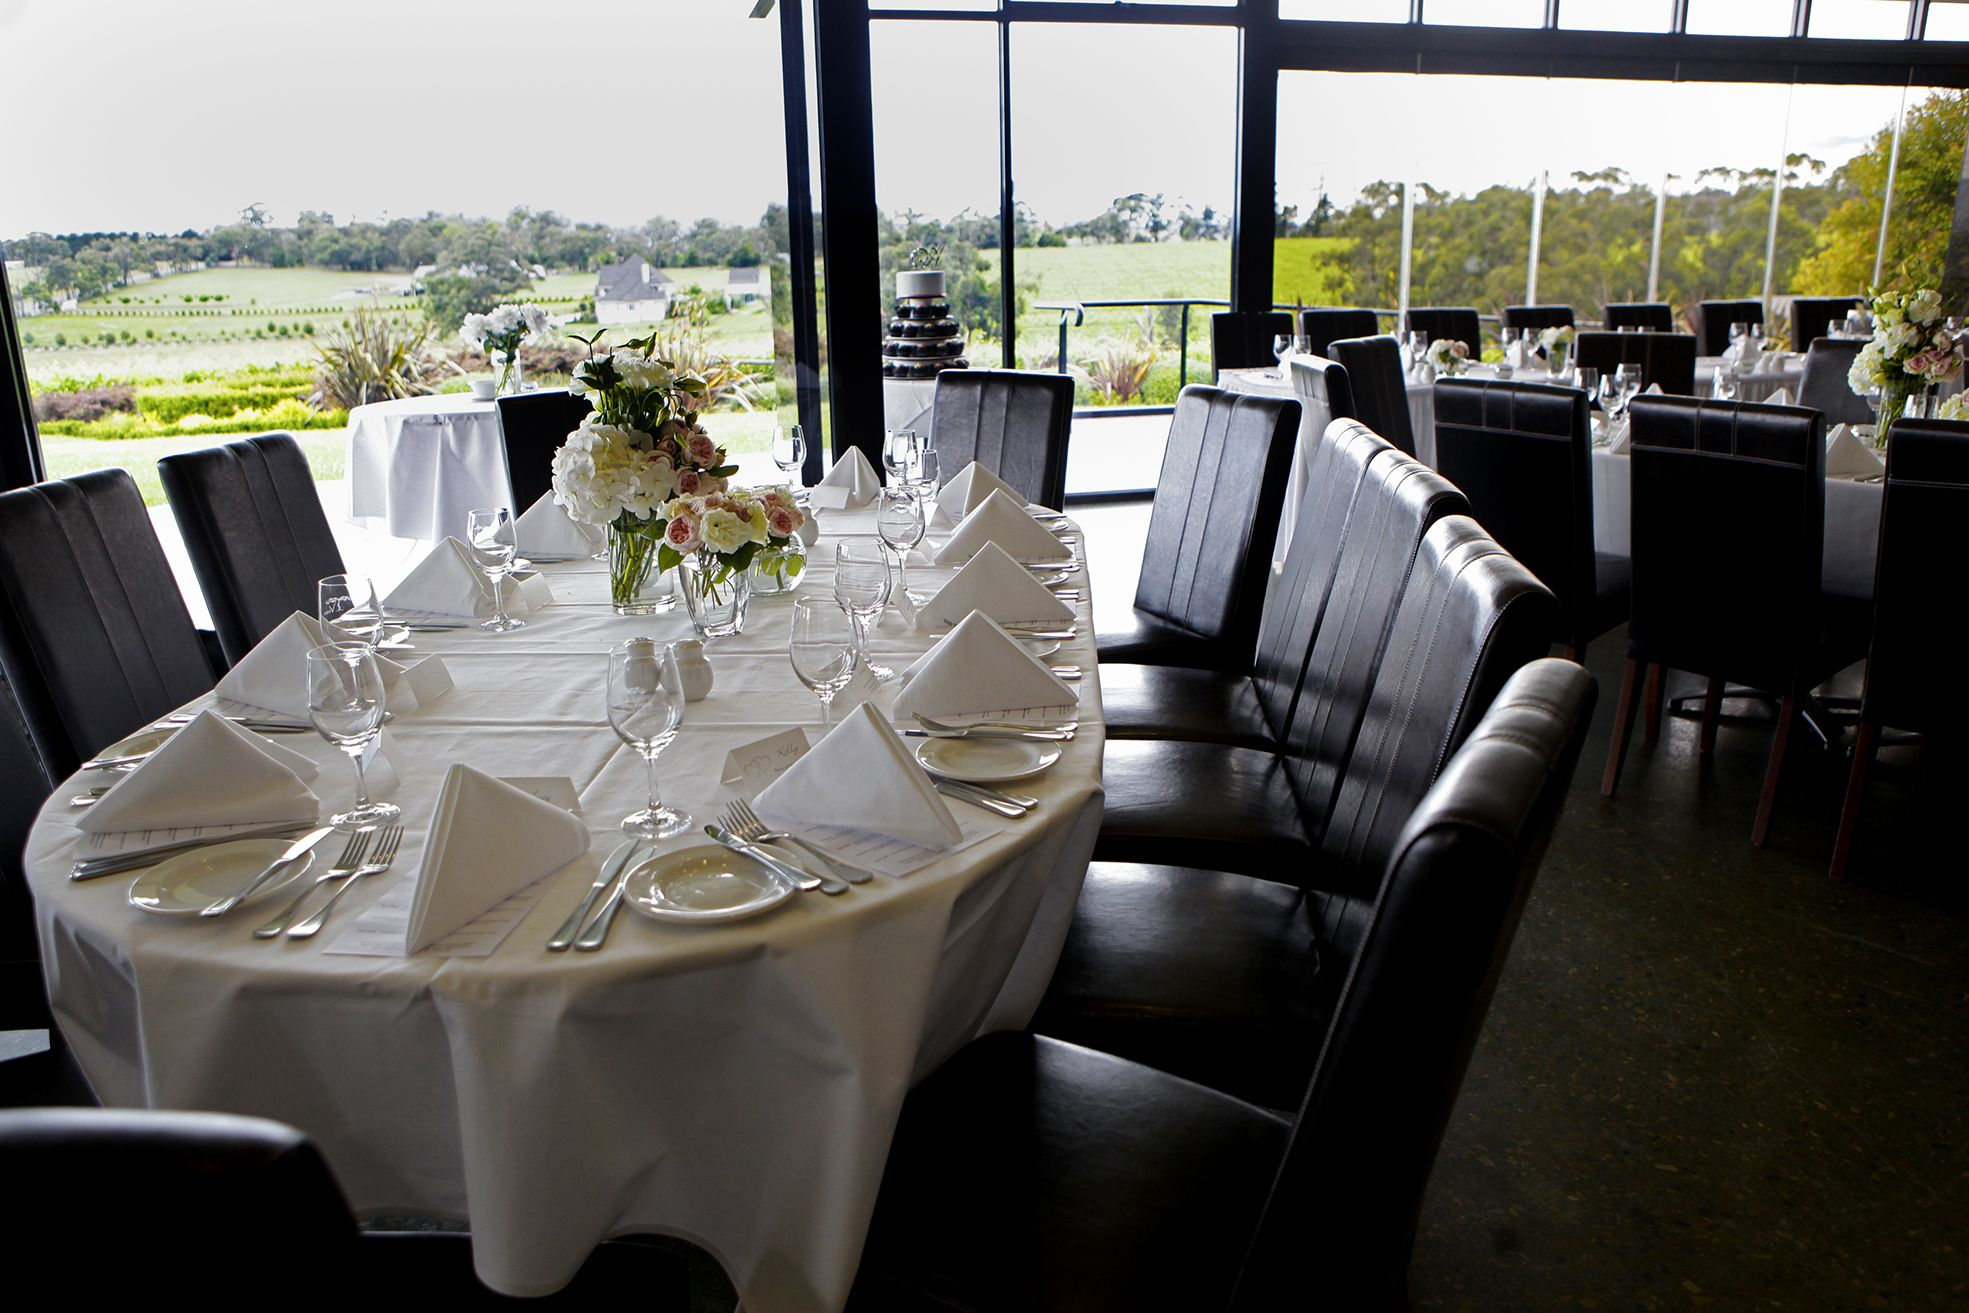 Wedding Reception Set Up At Vines Restaurant In The Yarra Valley